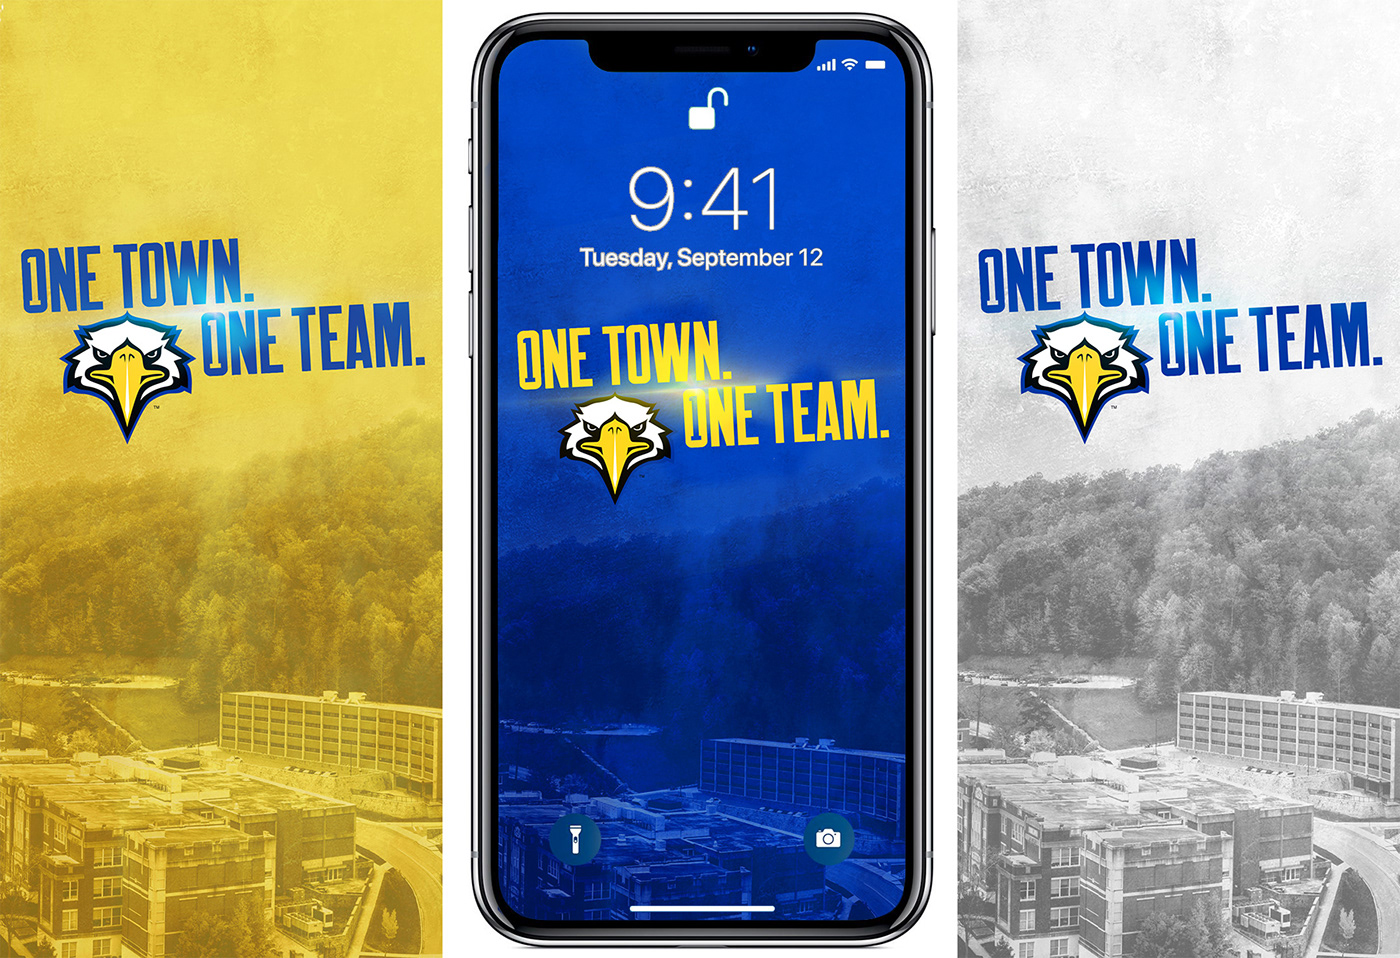 Morehead wallpapers